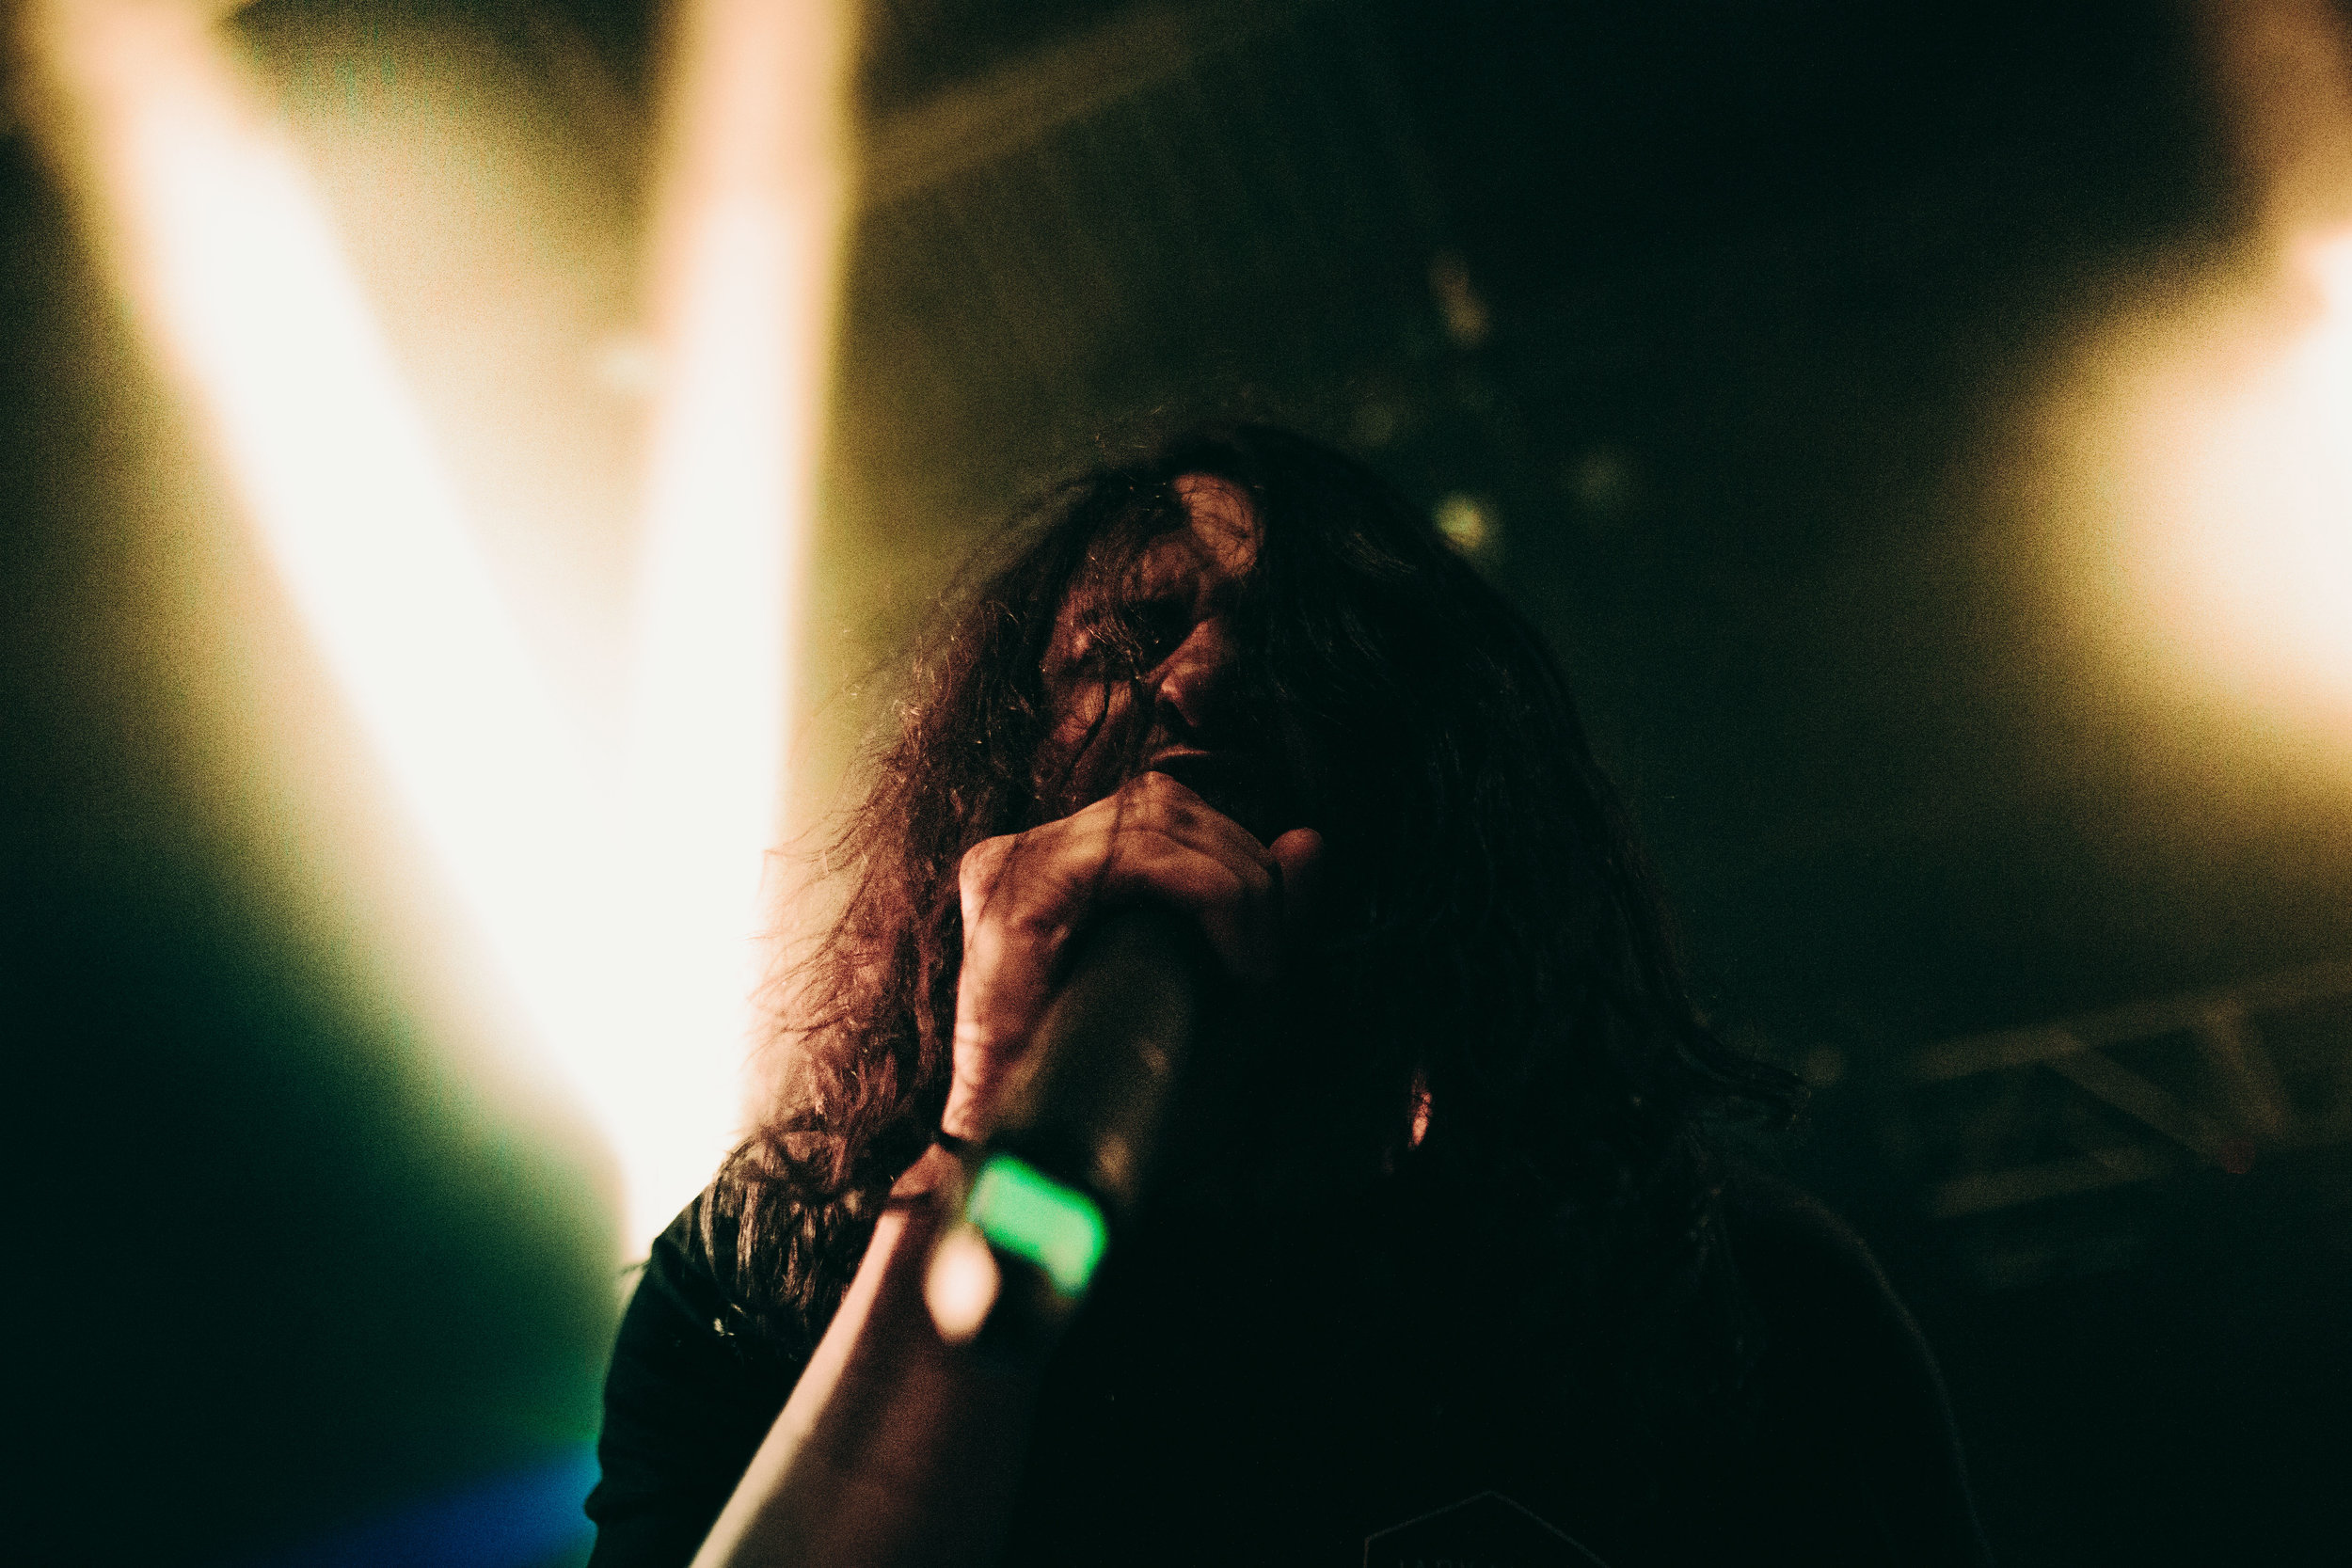 Copy of BORN OF OSIRIS PHOTOSET